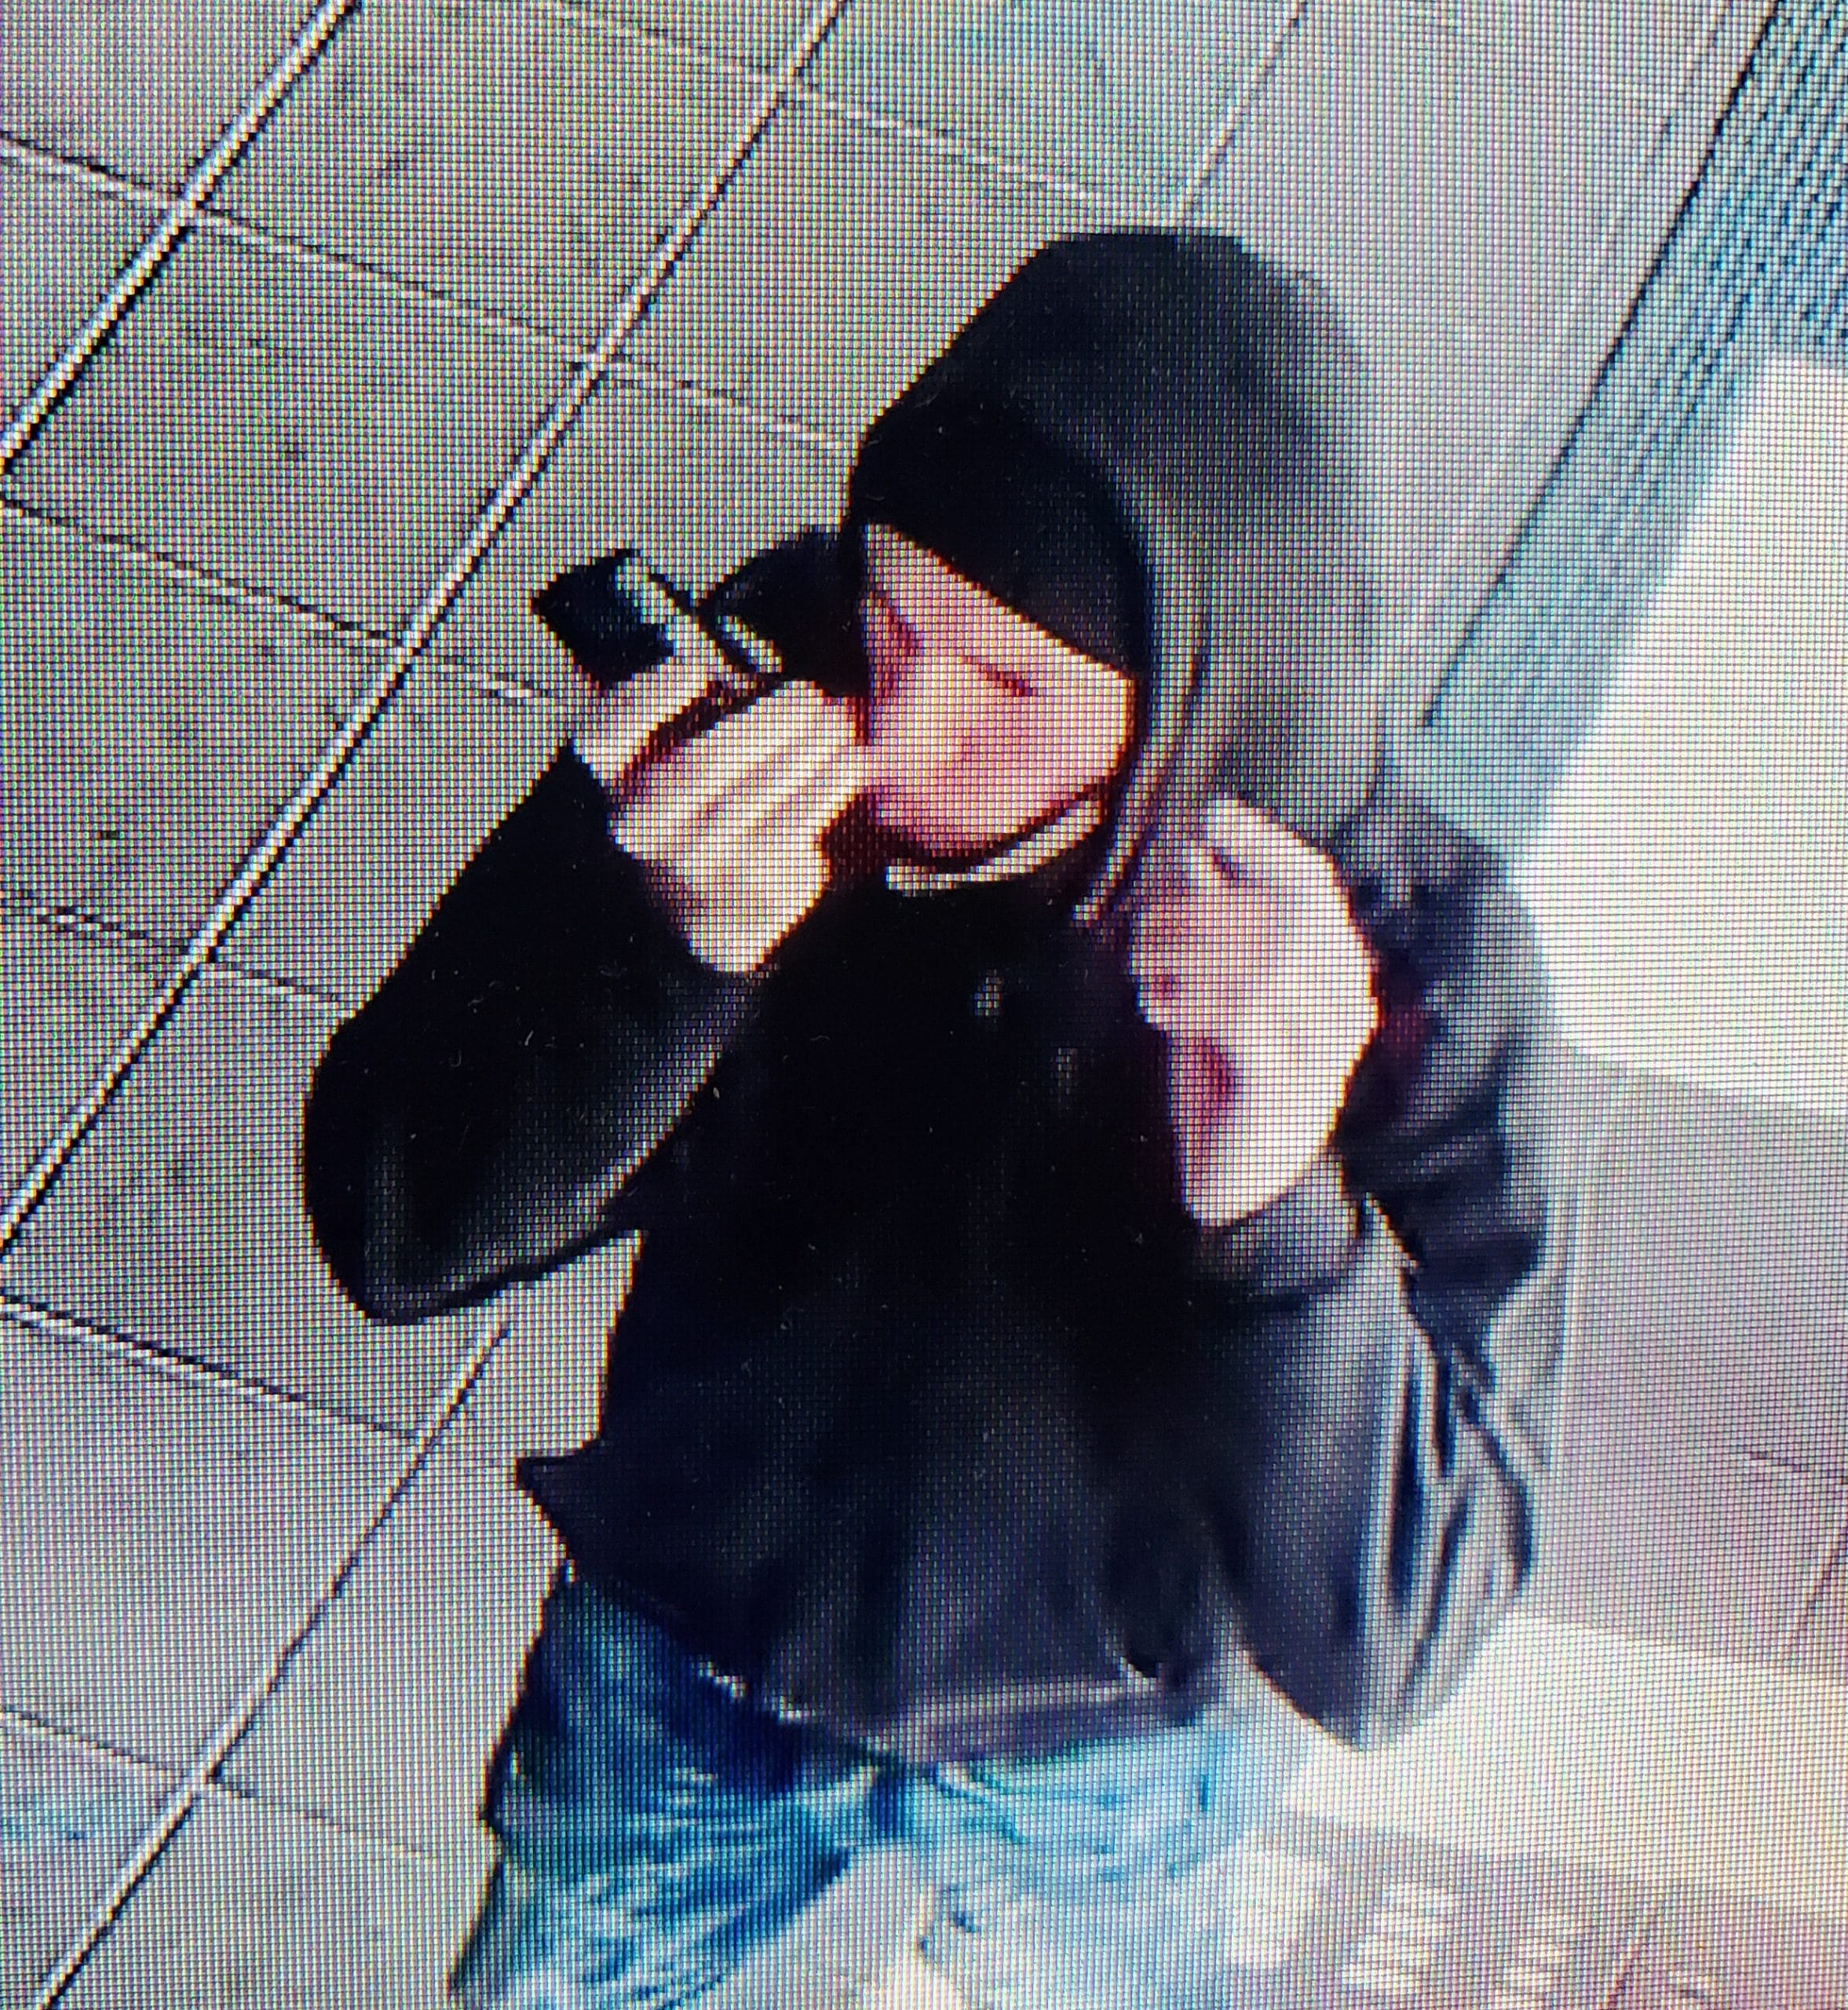 Today's police report: Photos of armed robbery suspect posted